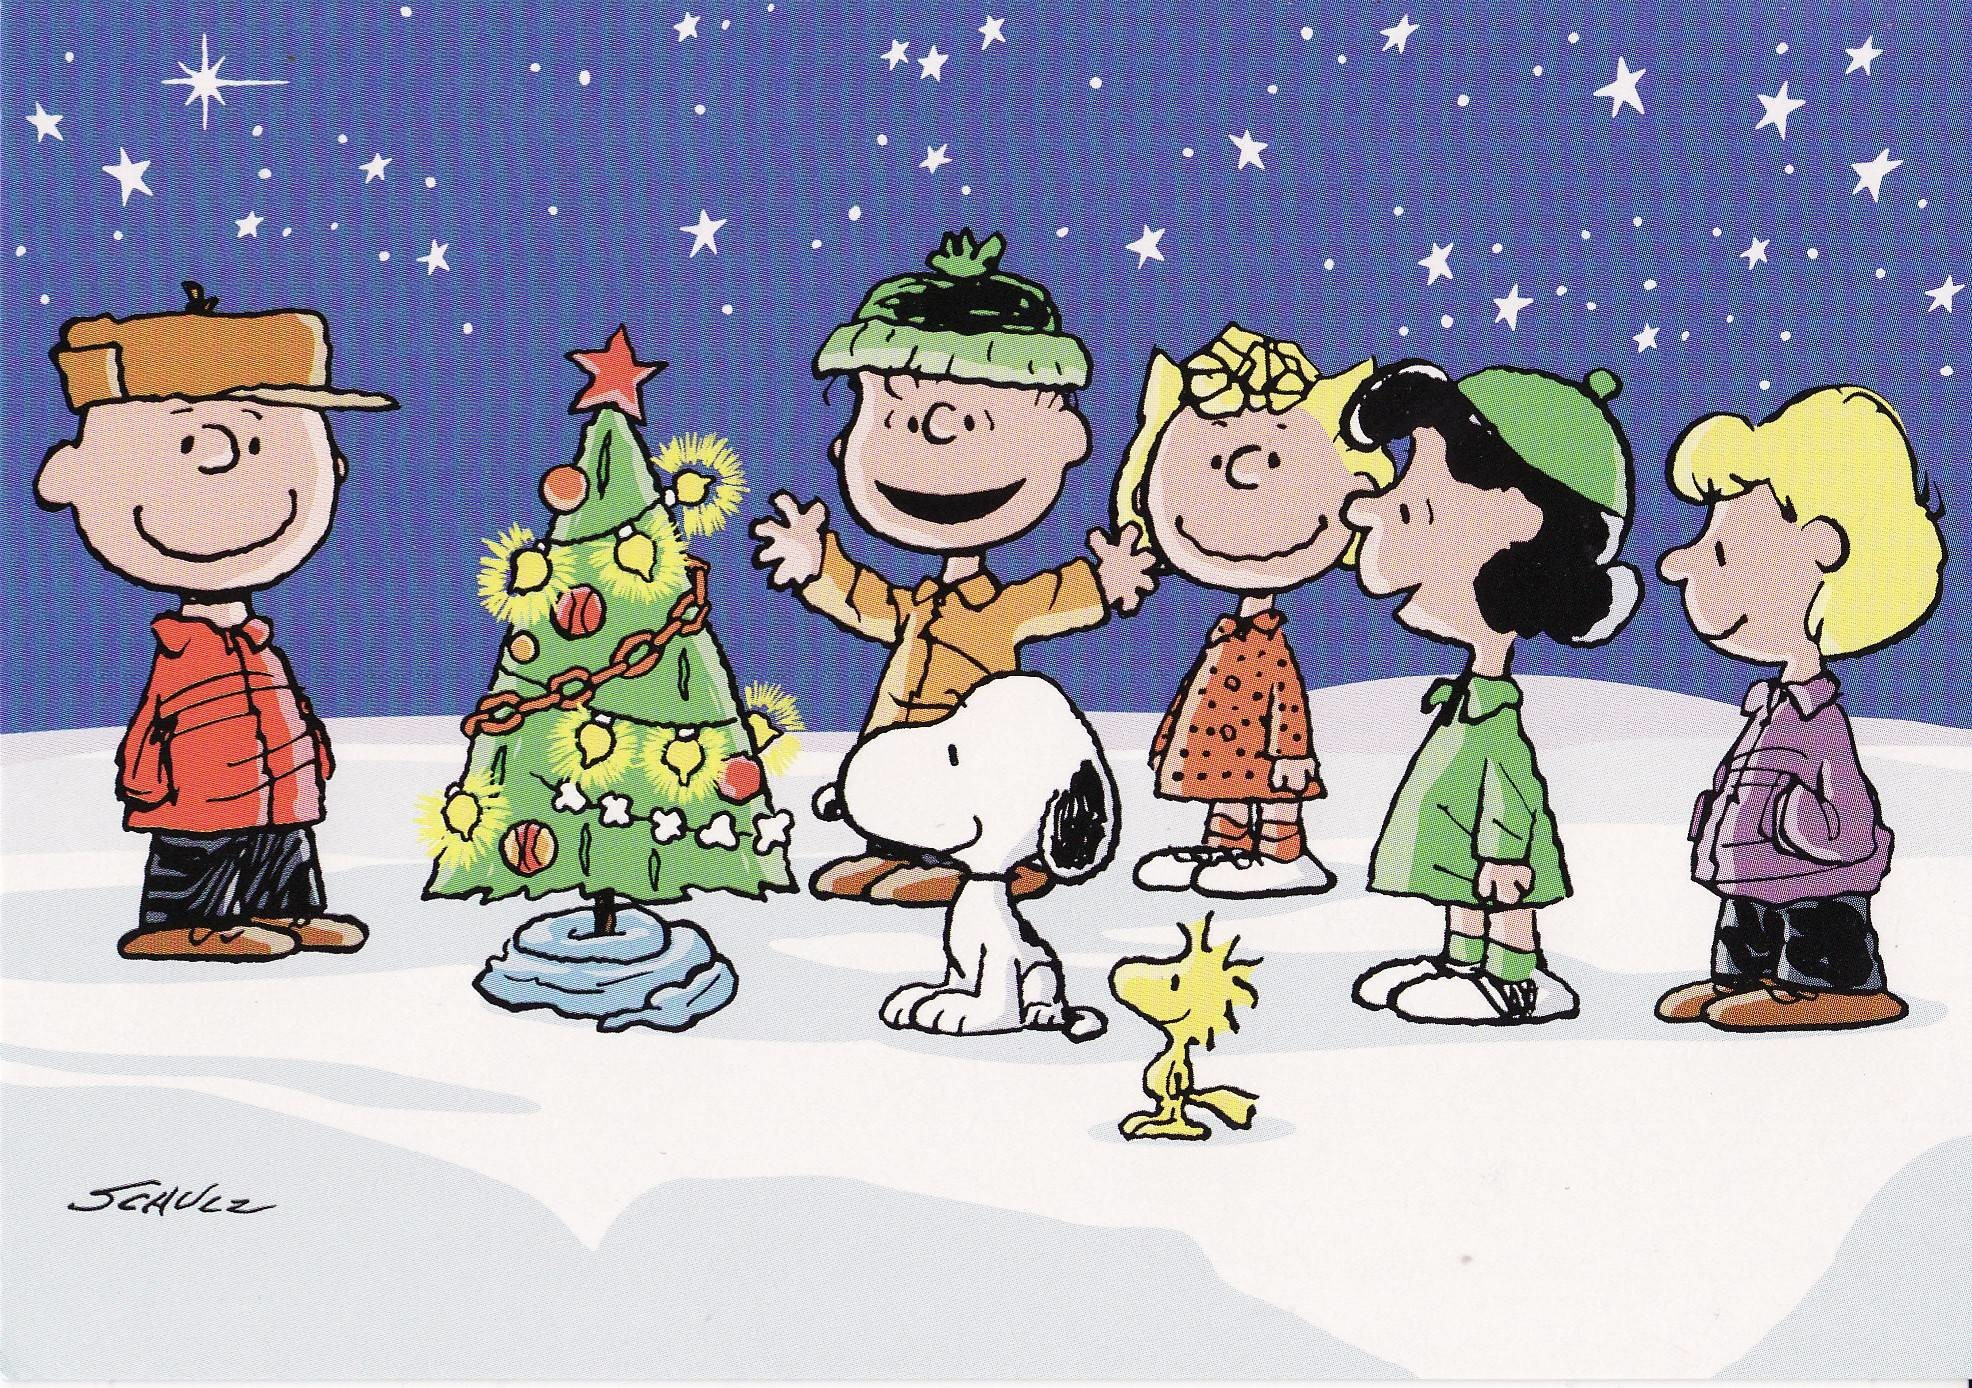 Charlie Brown Peanuts Comics Christmas Wallpaper Pictures Free .